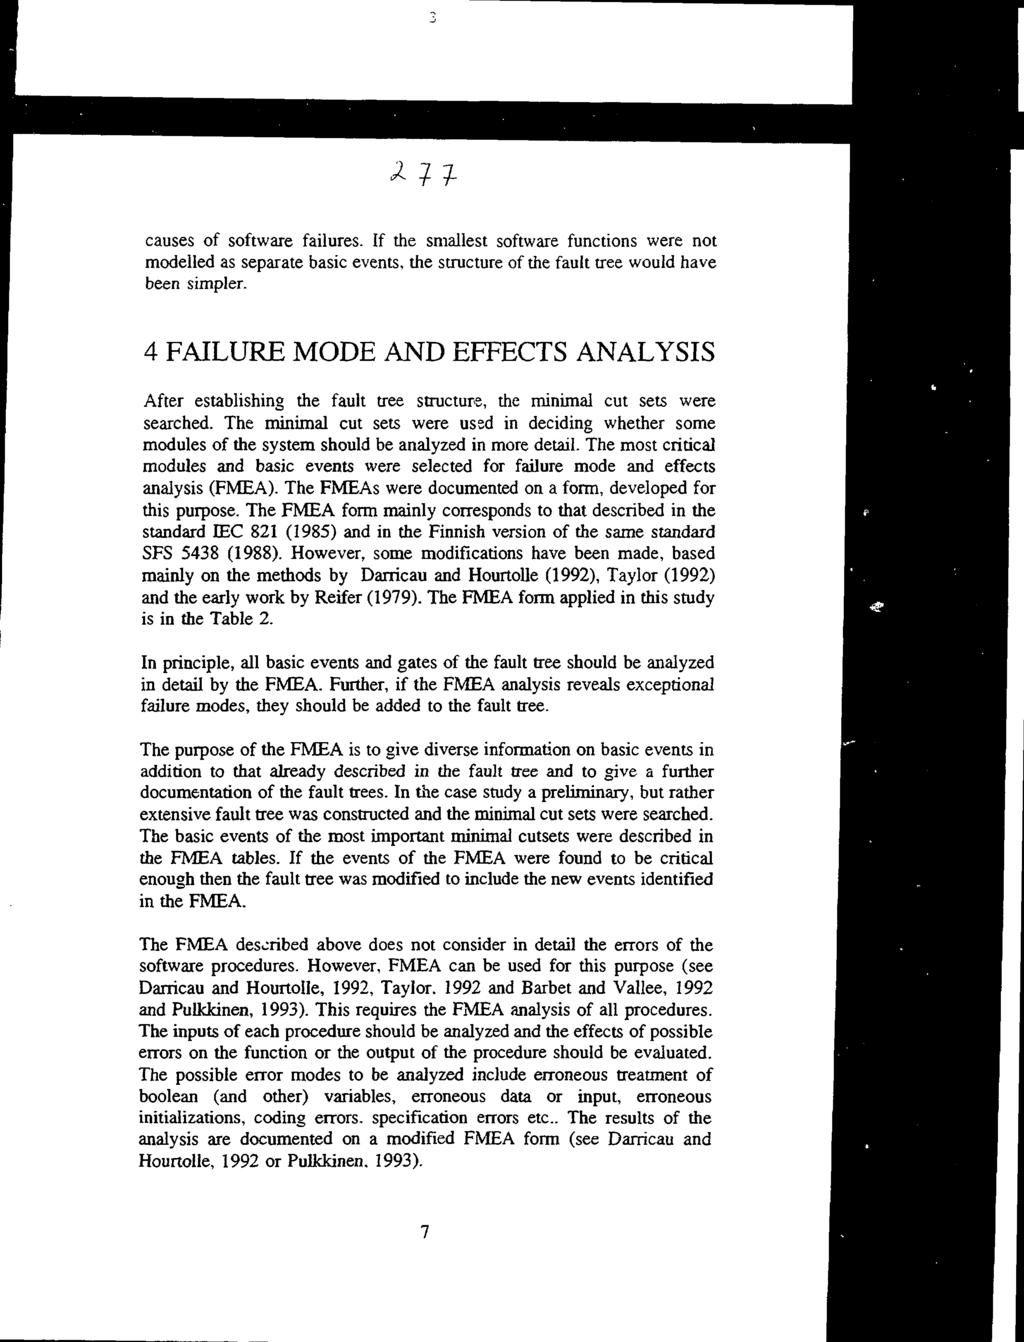 Fault Tree And Failure Mode Effects Analysis Of A Digital Safety Basic Gates Functions If The Smallest Software Were Not Modelled As Separate